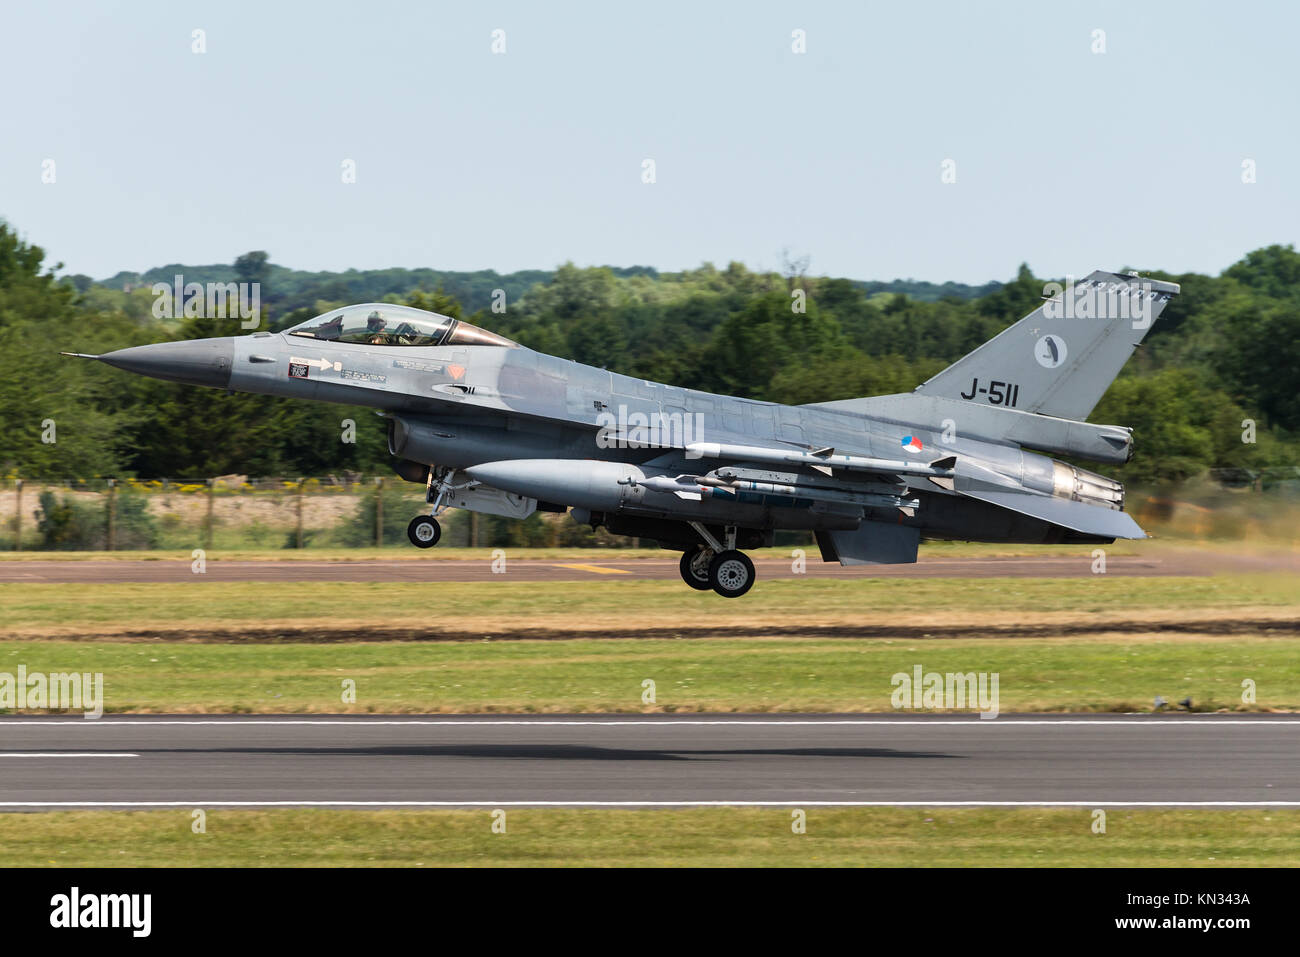 A F-16 fighter jet of the Royal Netherlands Air Face taking off at the RAF Fairford airbase. - Stock Image